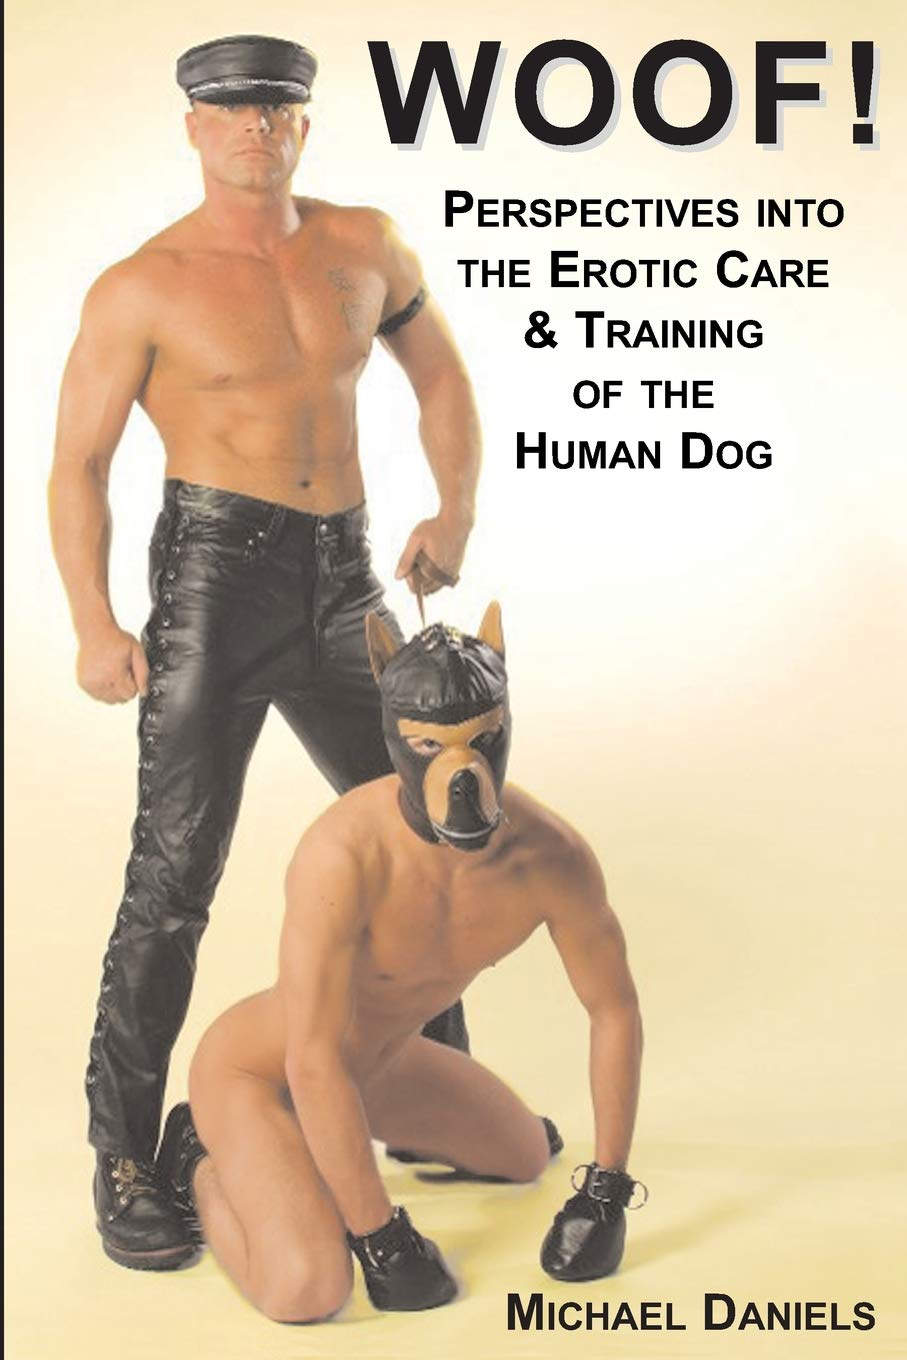 Woof!: Perspectives Into The Erotic Care & Training of The Human Dog